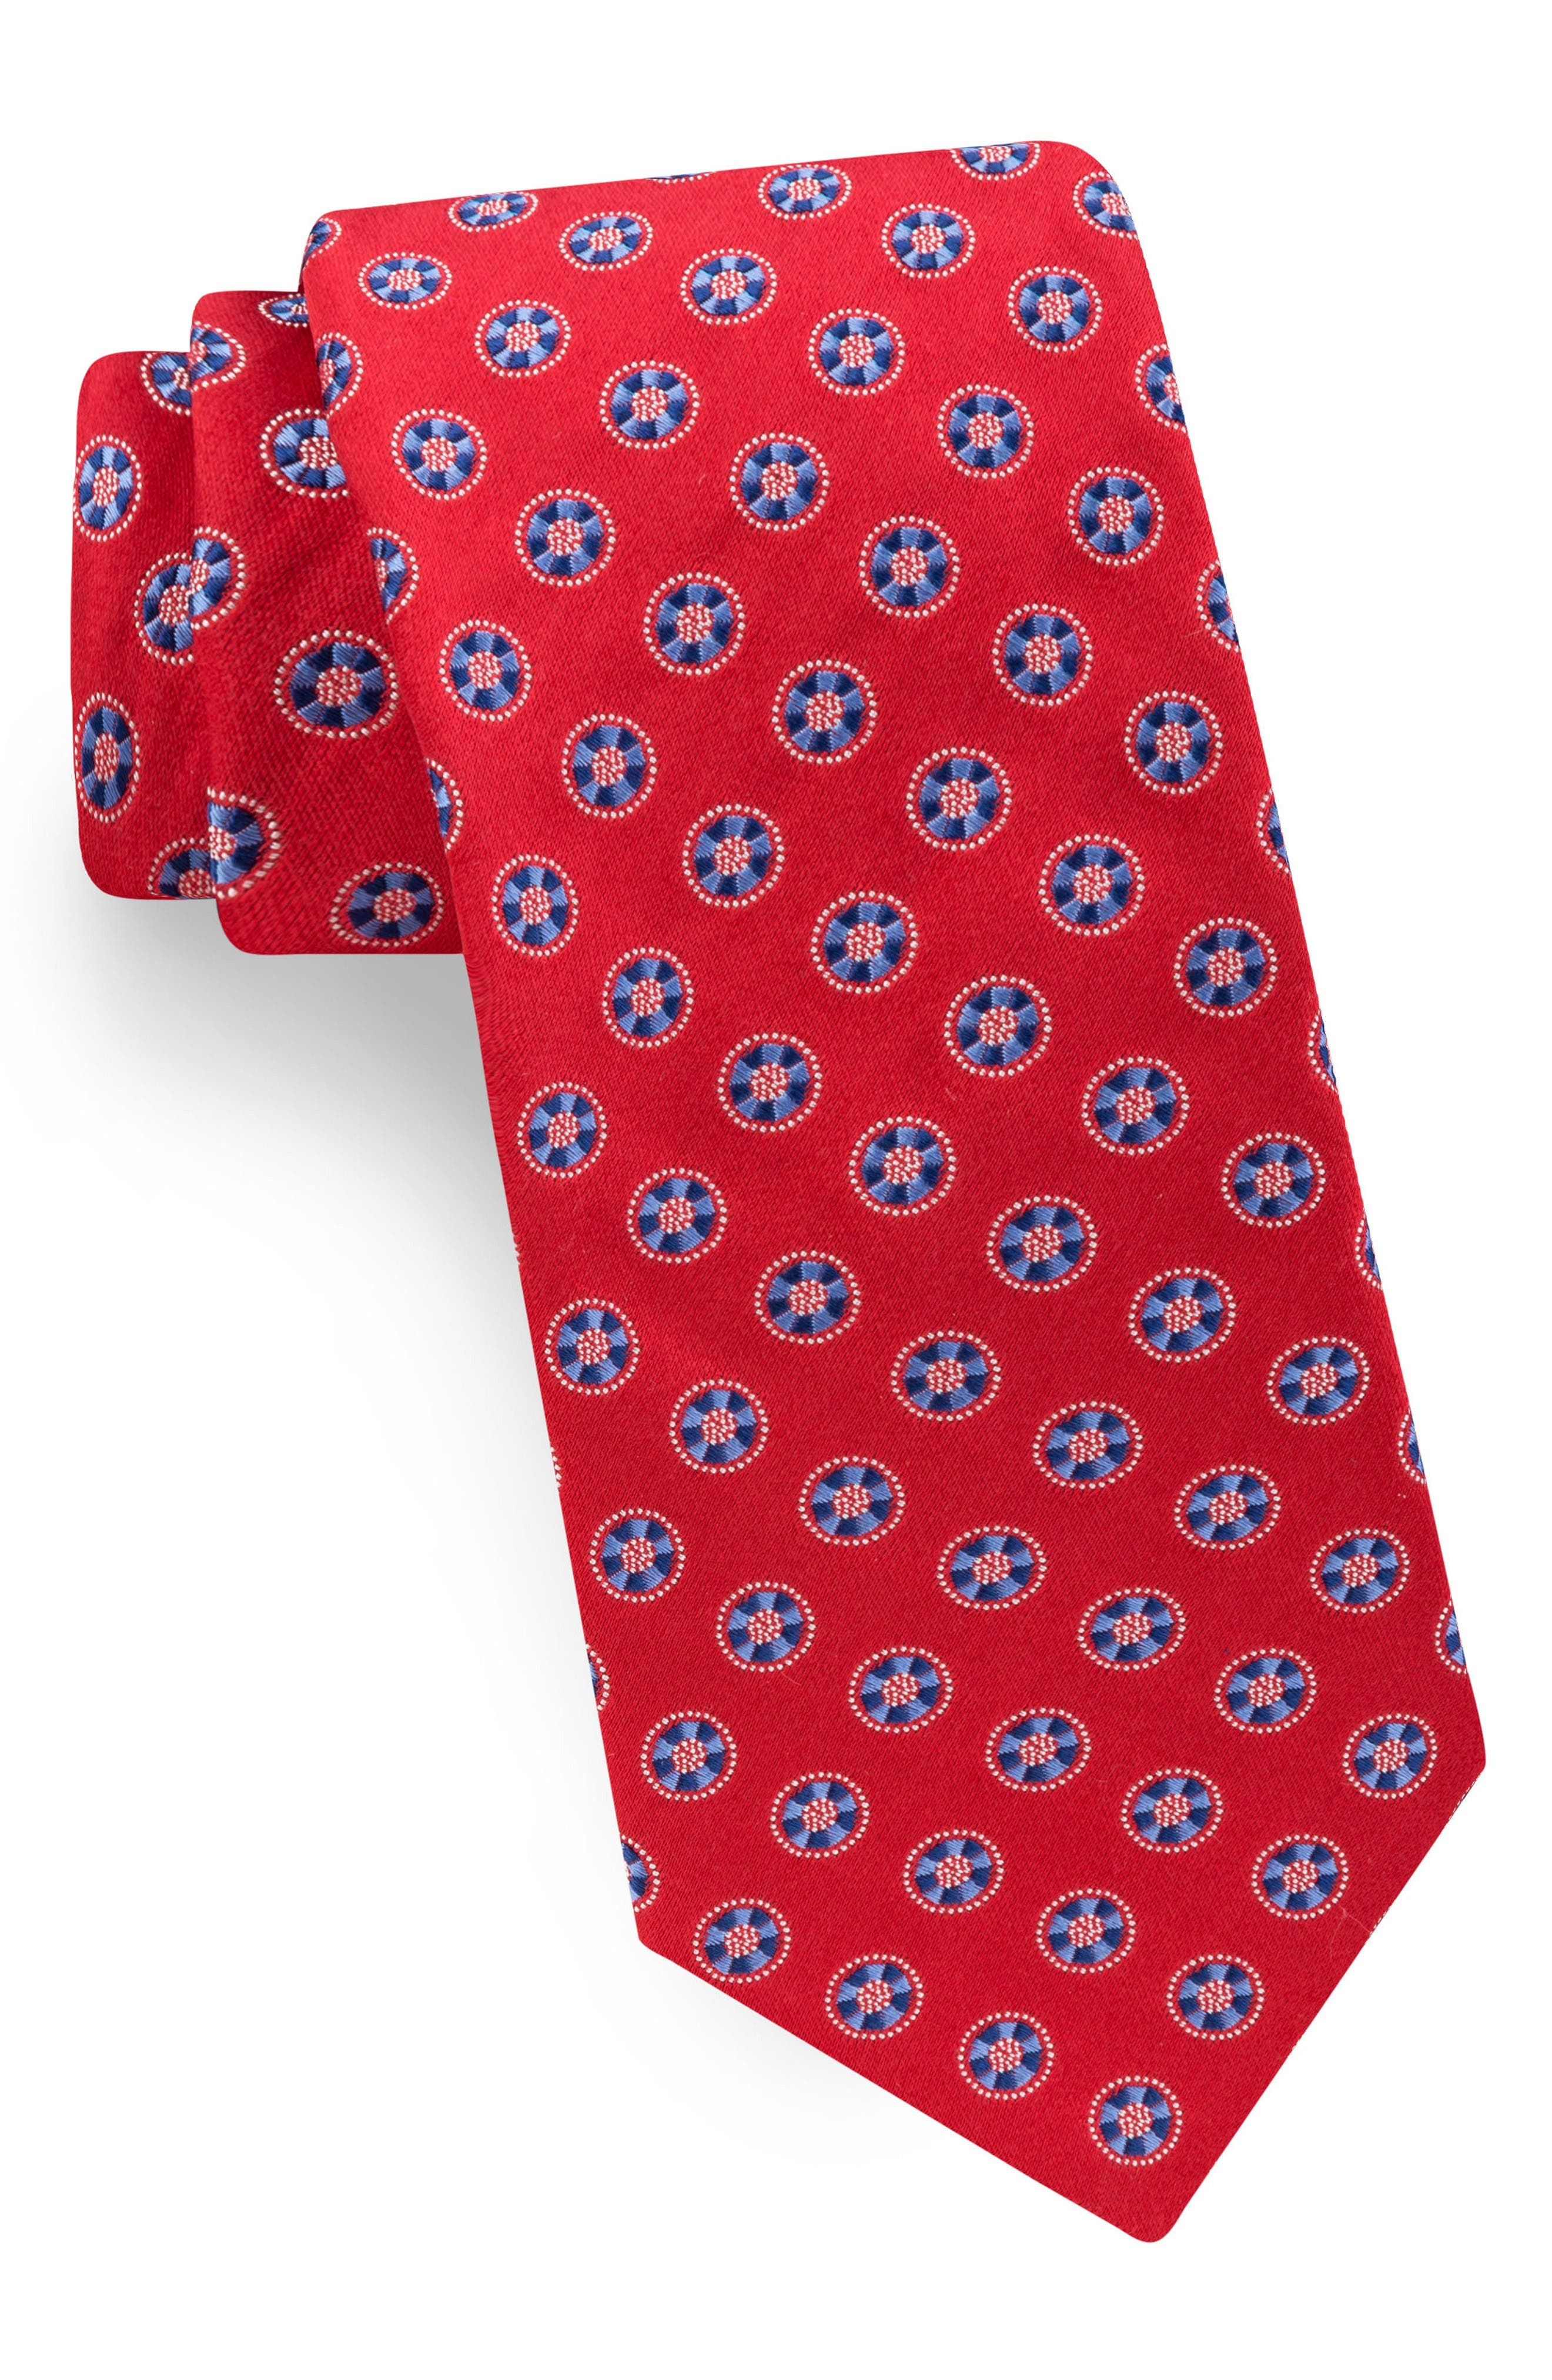 Lifesaver Medallion Silk Tie,                         Main,                         color, Red